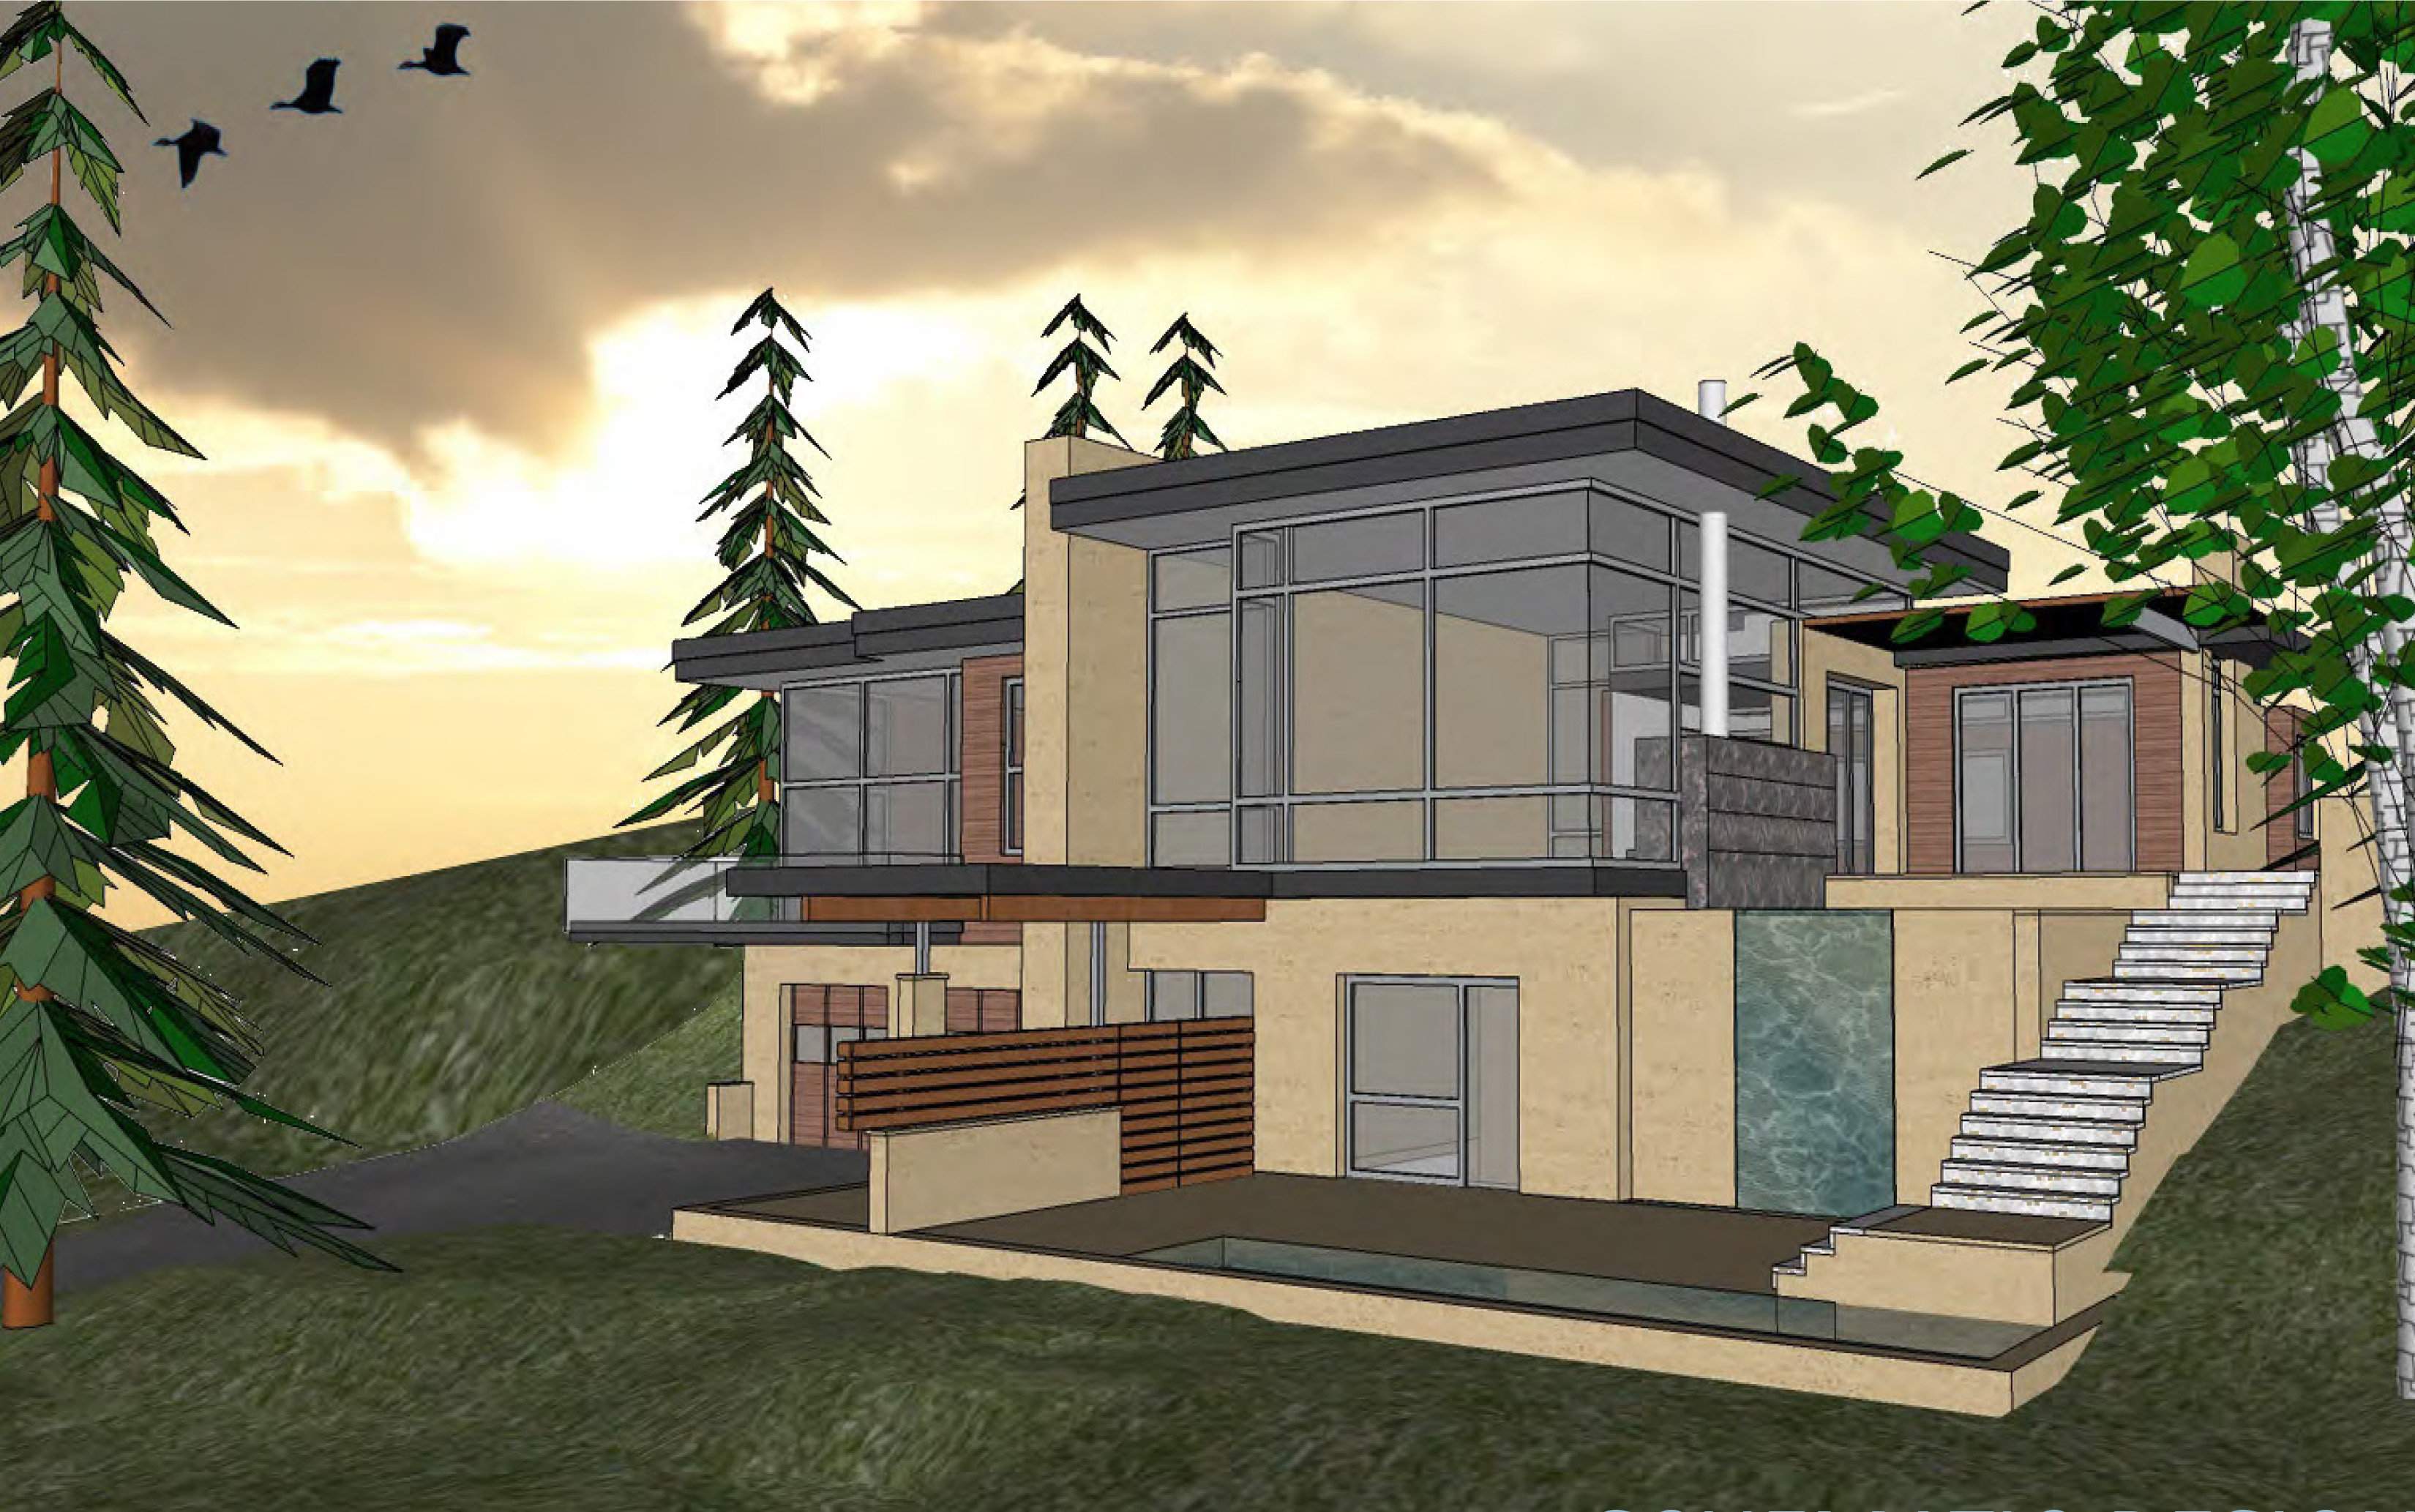 Casa para uma família para Venda às New Construction on Red Mountain 47 Bennett Court Aspen, Colorado 81611 Estados Unidos